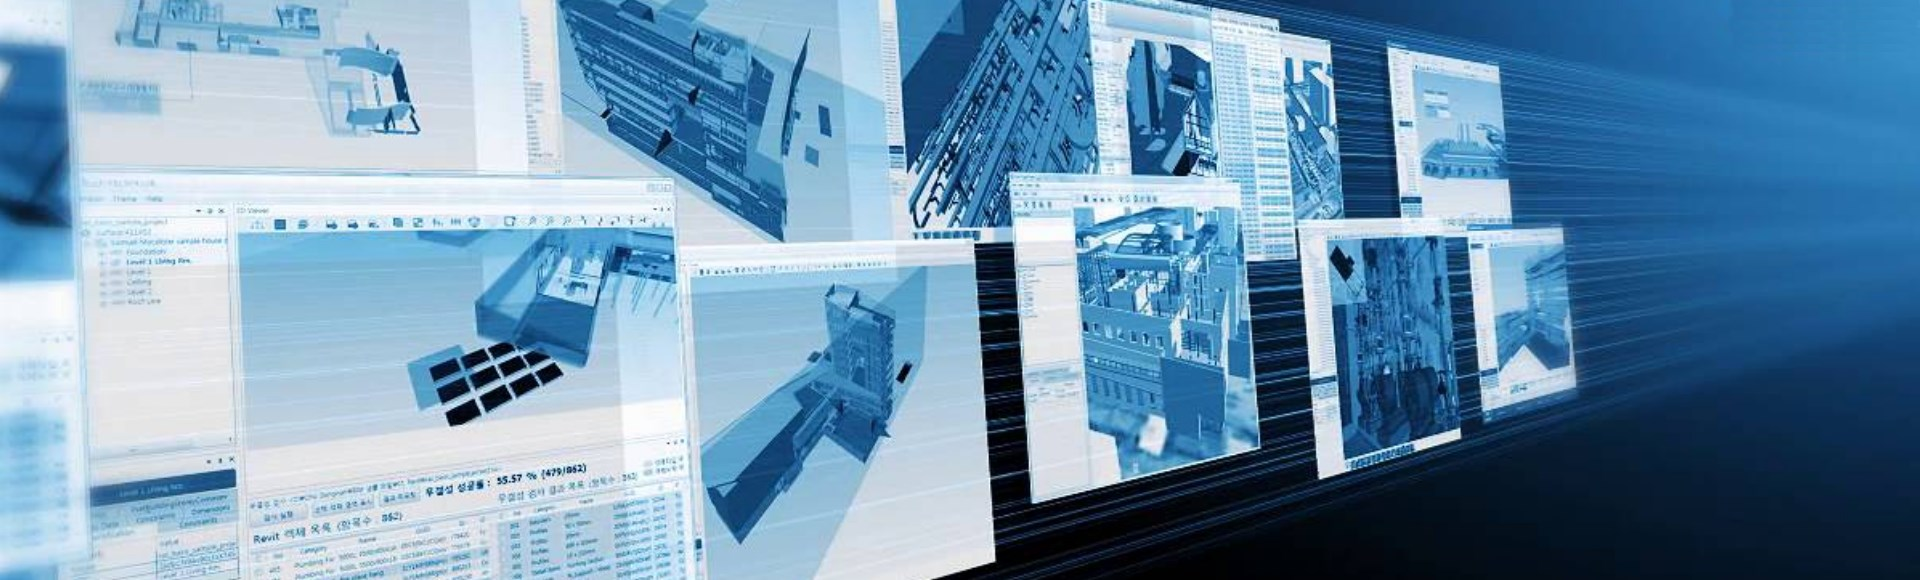 intelligent bim solutions software consultancy